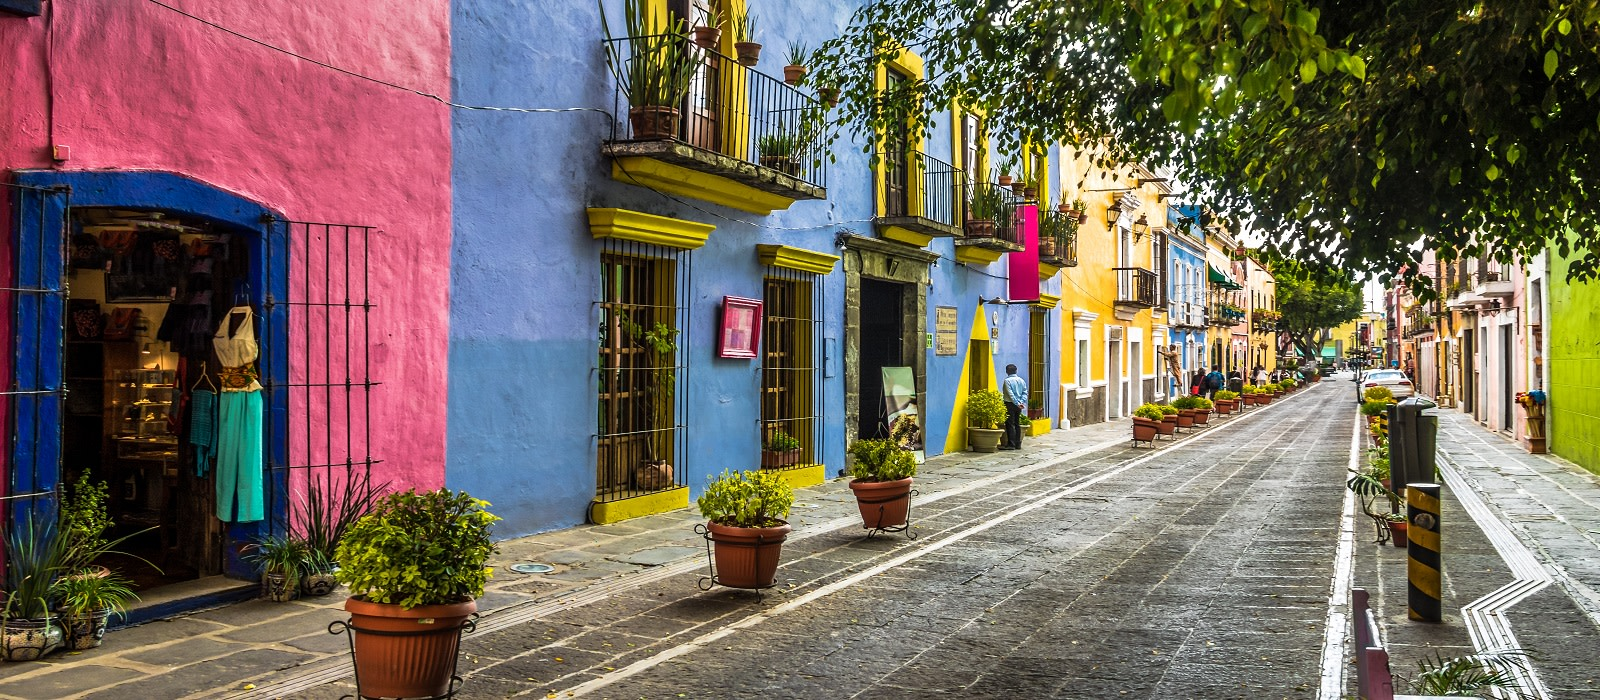 Image result for pictures of Puebla, mexico